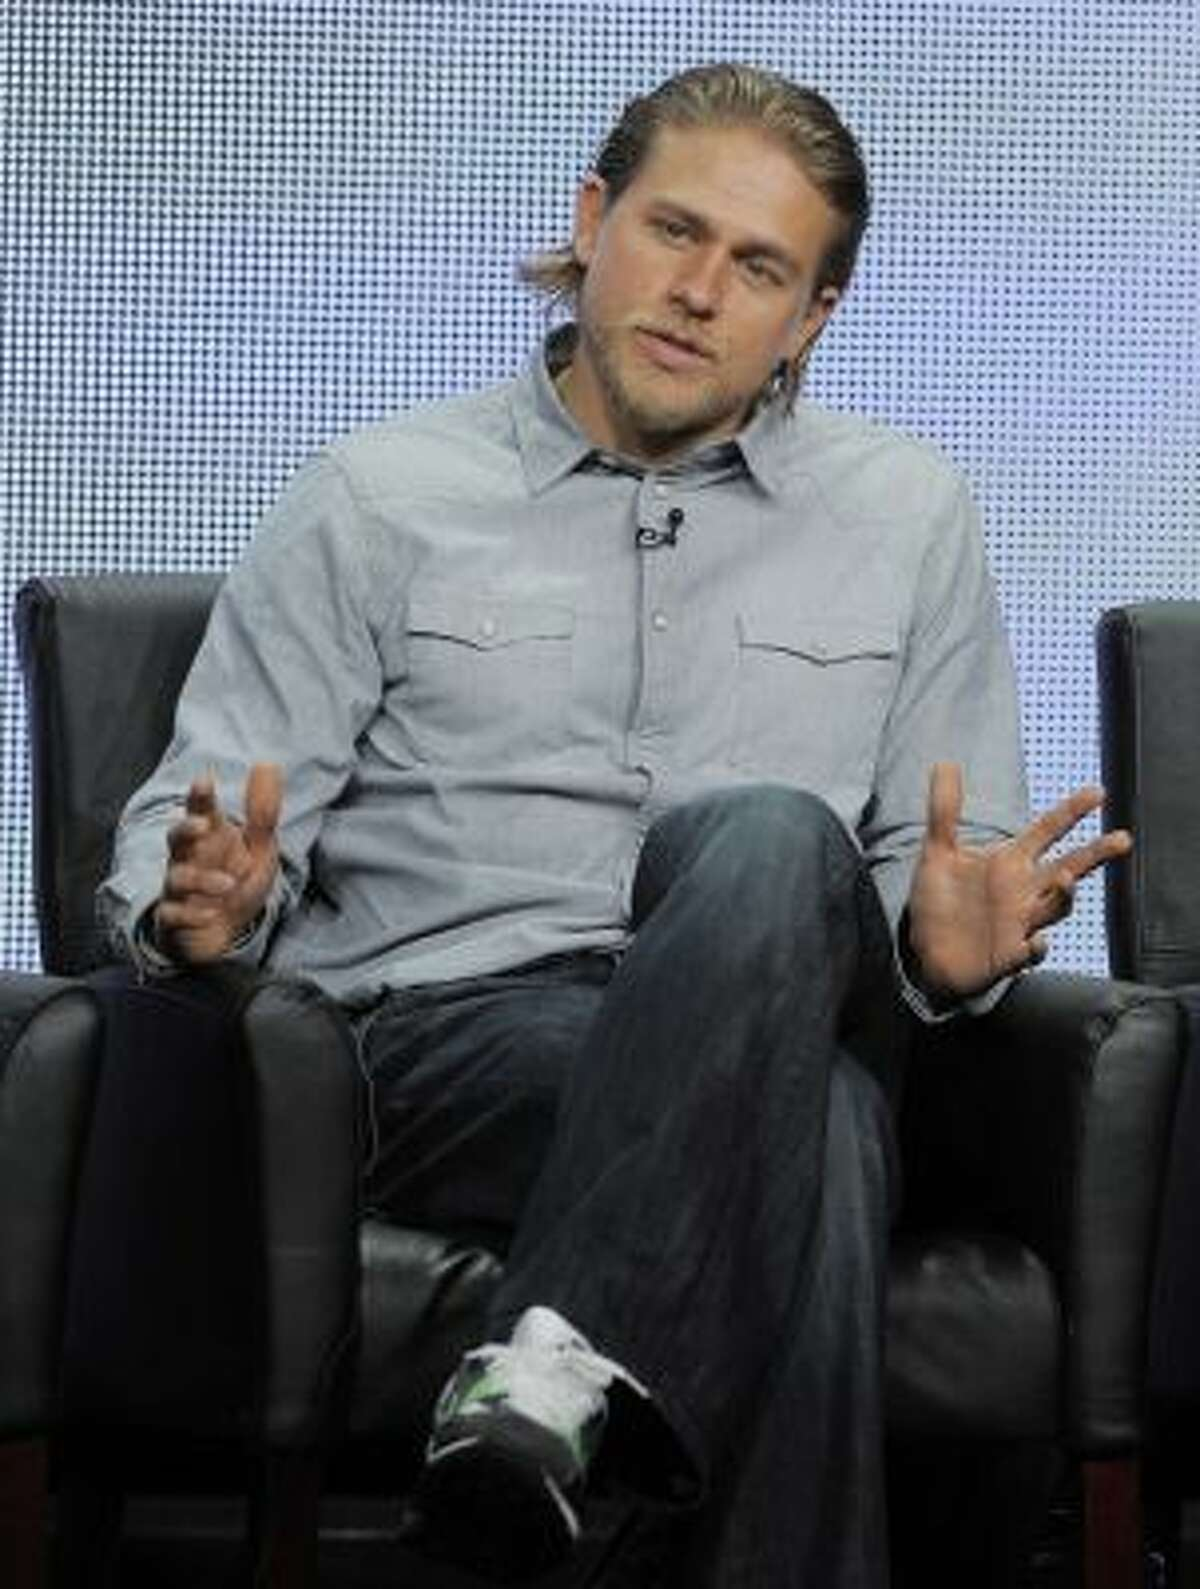 """In this Friday, Aug. 2, 2013 file photo, Charlie Hunnam, a cast member in the FX series """"Sons of Anarchy,"""" answers a reporter's question during the FX 2013 Summer TCA press tour in Beverly Hills, Calif."""